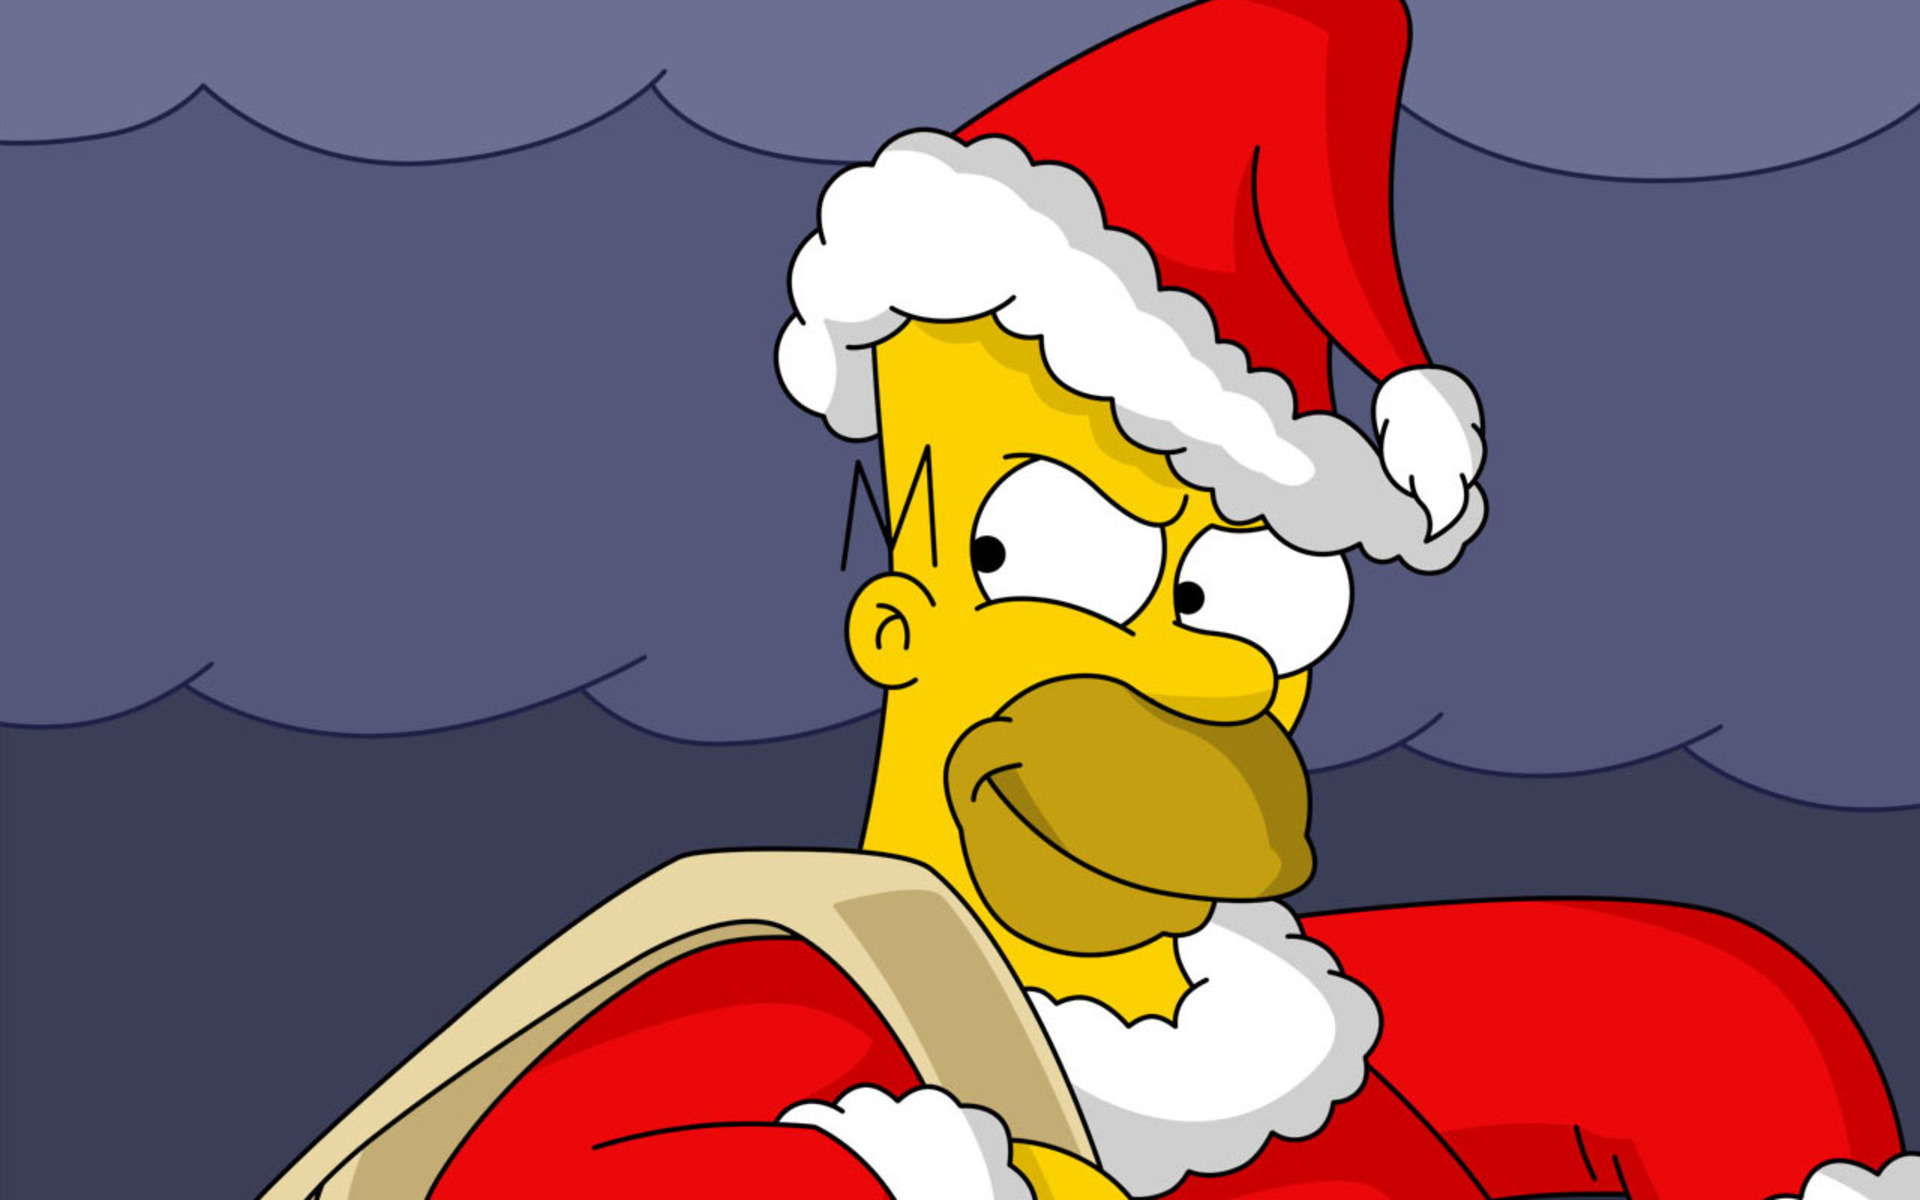 Simpsons Christmas | Windows 8 Wallpaper HD